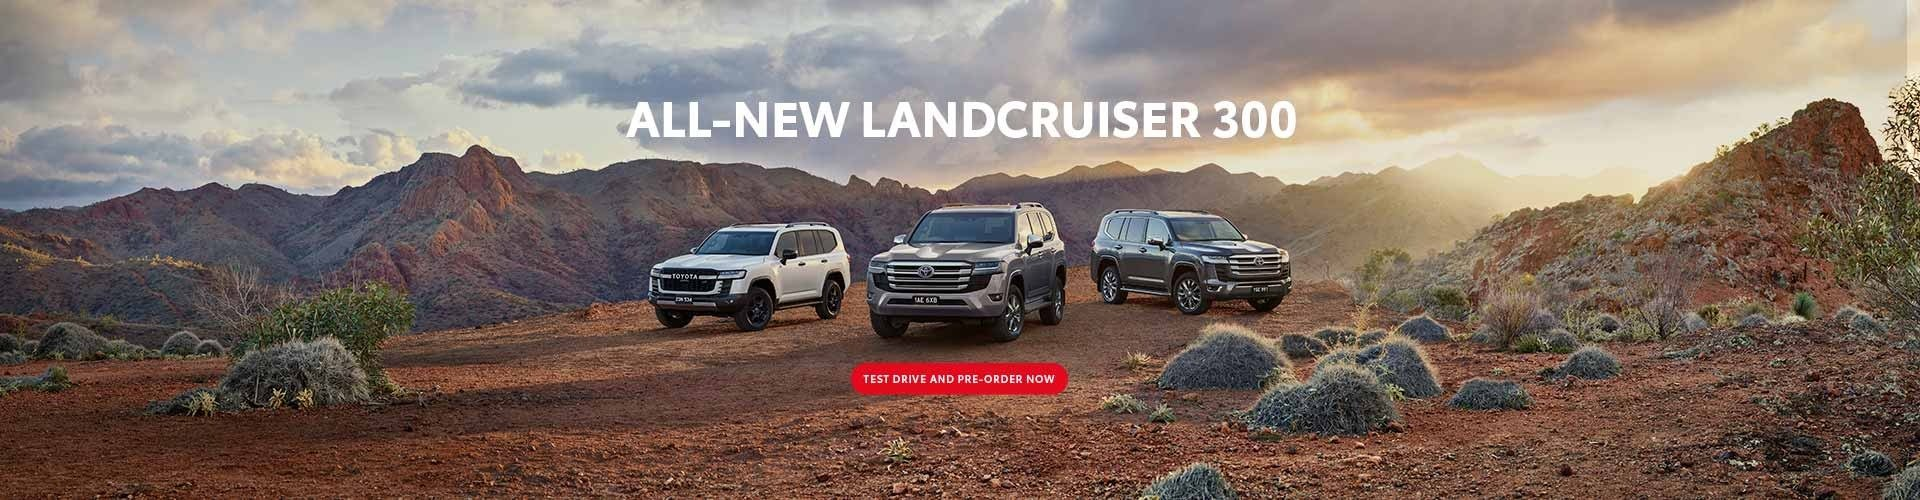 All-New Landcruiser 300 Series is here at John Madill Toyota